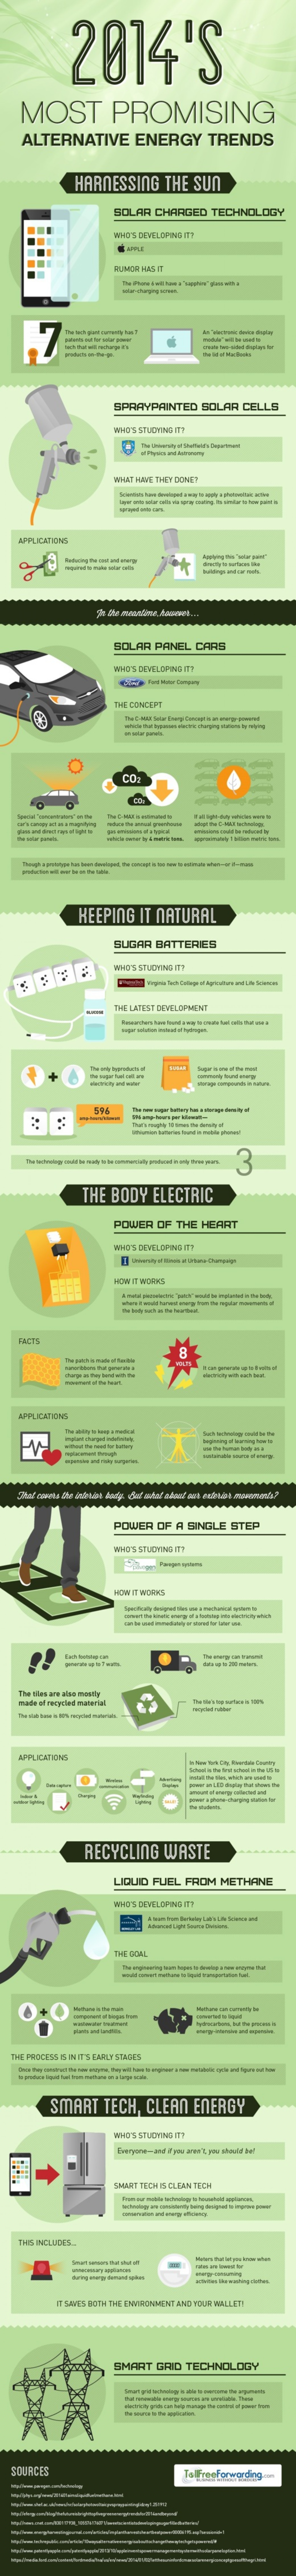 2014's Most Promising Alternative Energy Trends Infographic